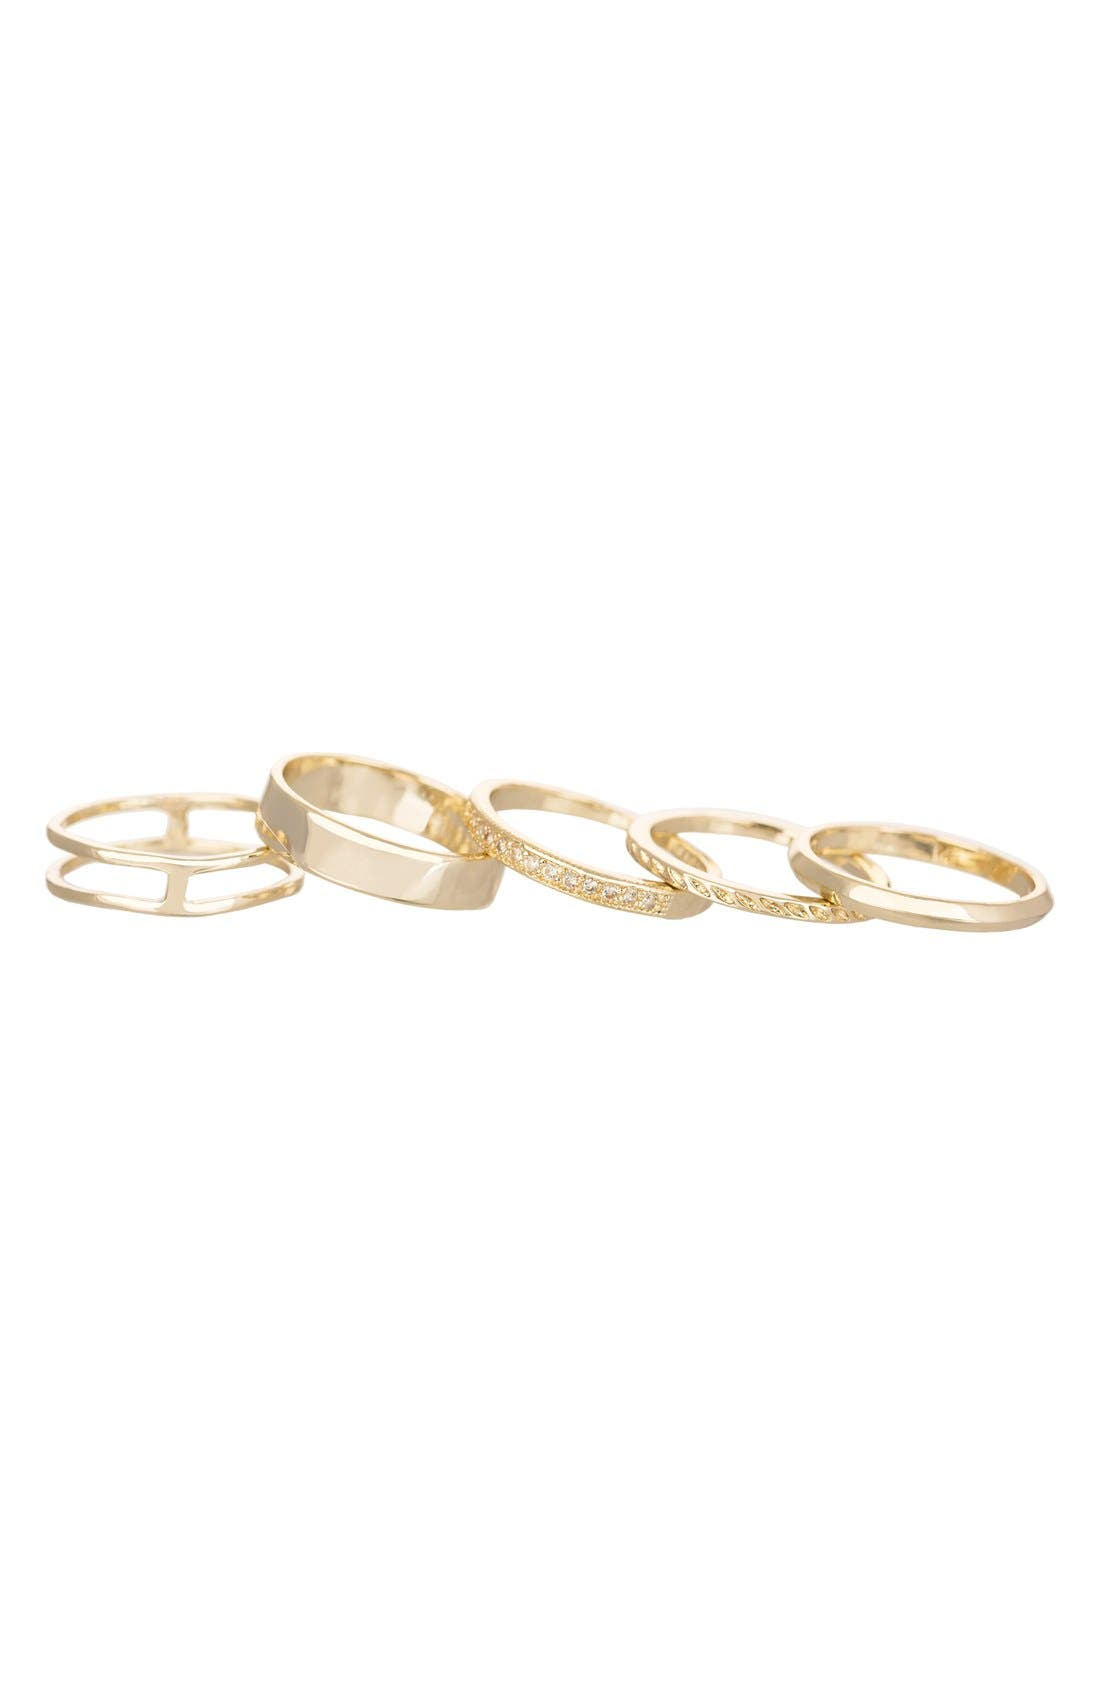 Kendra Scott 'Kara' Stackable Midi Rings (Set of 5)